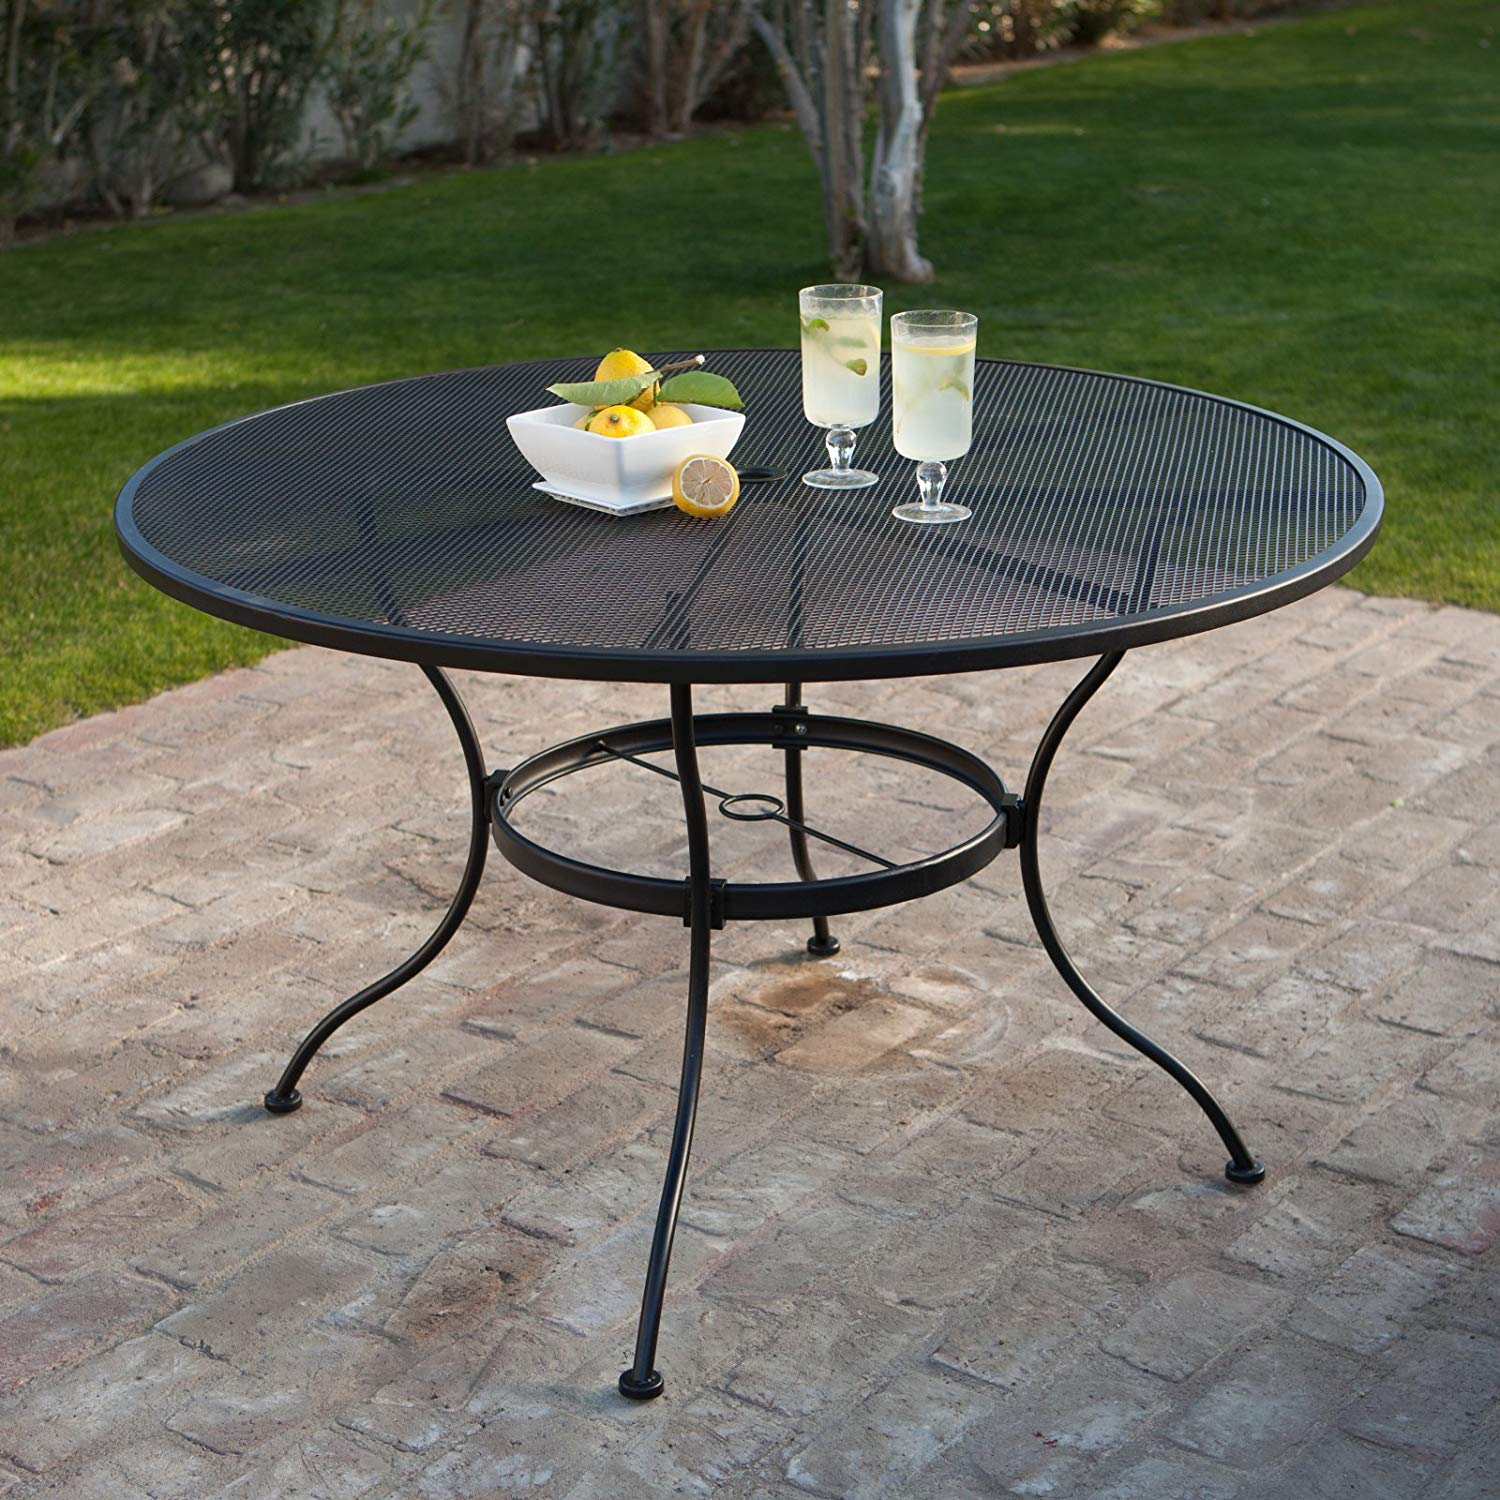 Outdoor Mesh Iron Oval Dining Table, Study Construction, Seat Up To Four People, Patio Furniture, Powder Coated Finish, Suitable For Garden, Pool, Backyard, Bistro, Black Color + Expert Guide